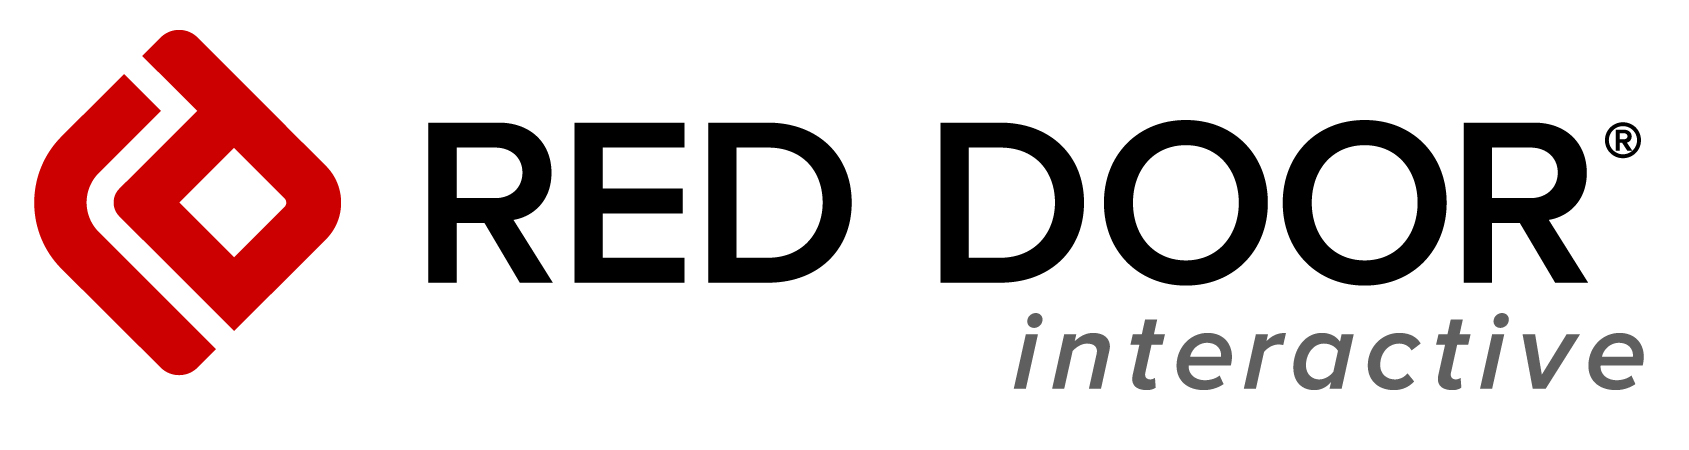 With Offices In San Diego, Carlsbad And Denver, Red Door Interactive, Inc.  Is A Strategic Partner Dedicated To Ensuring Businesses Acquire, Convert,  ...